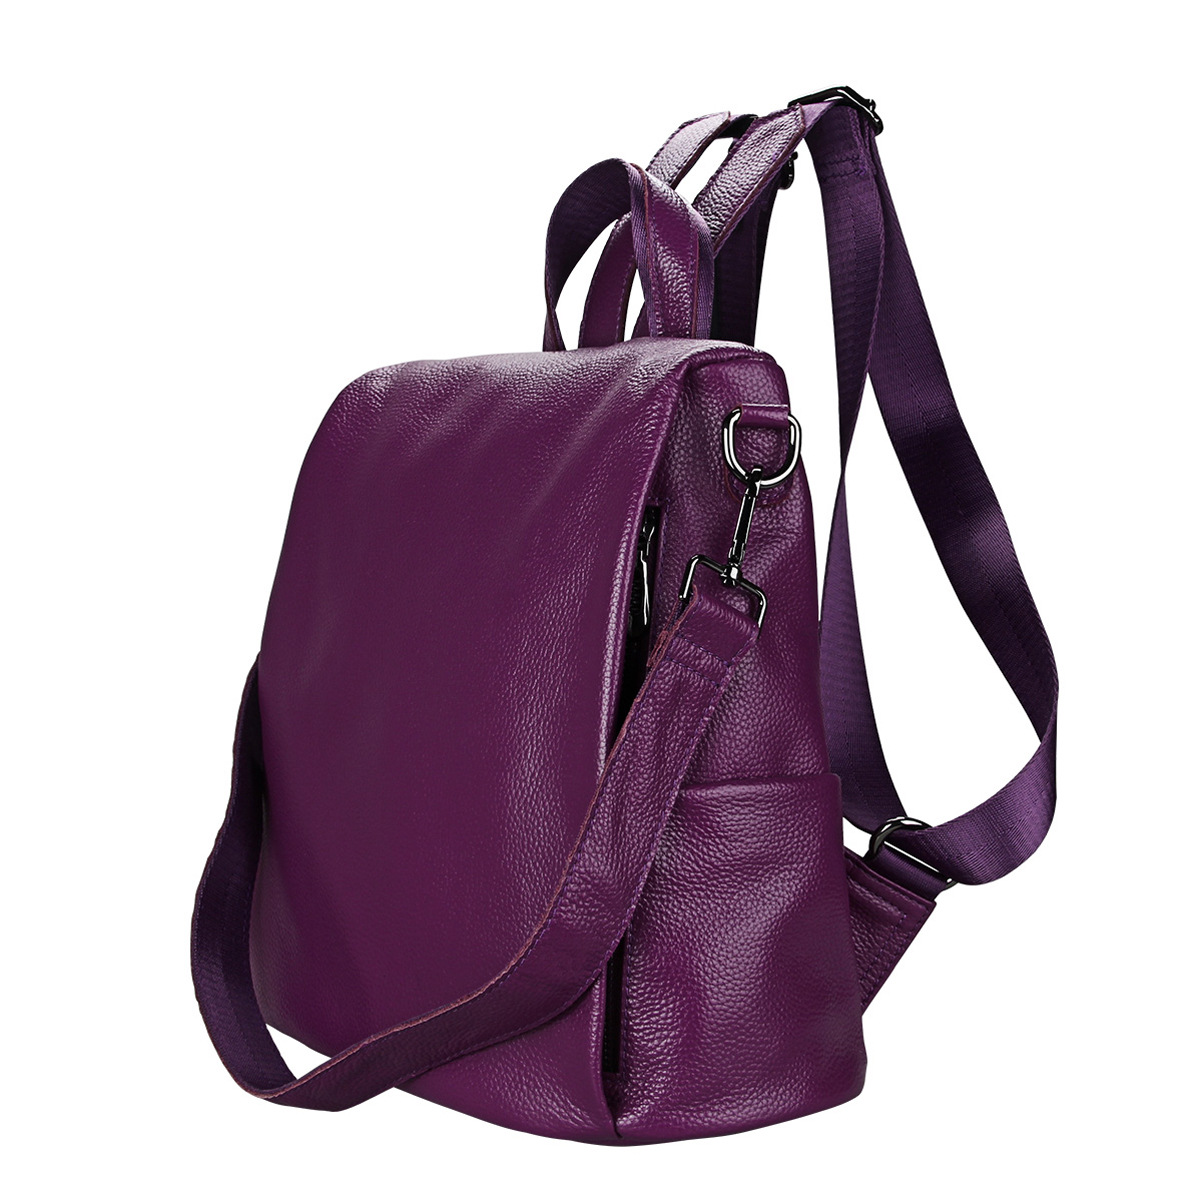 Solid Genuine Leather Teenage College Grils Backpack High Quality Women Stylish Chic Travel Backpack Female Fashion